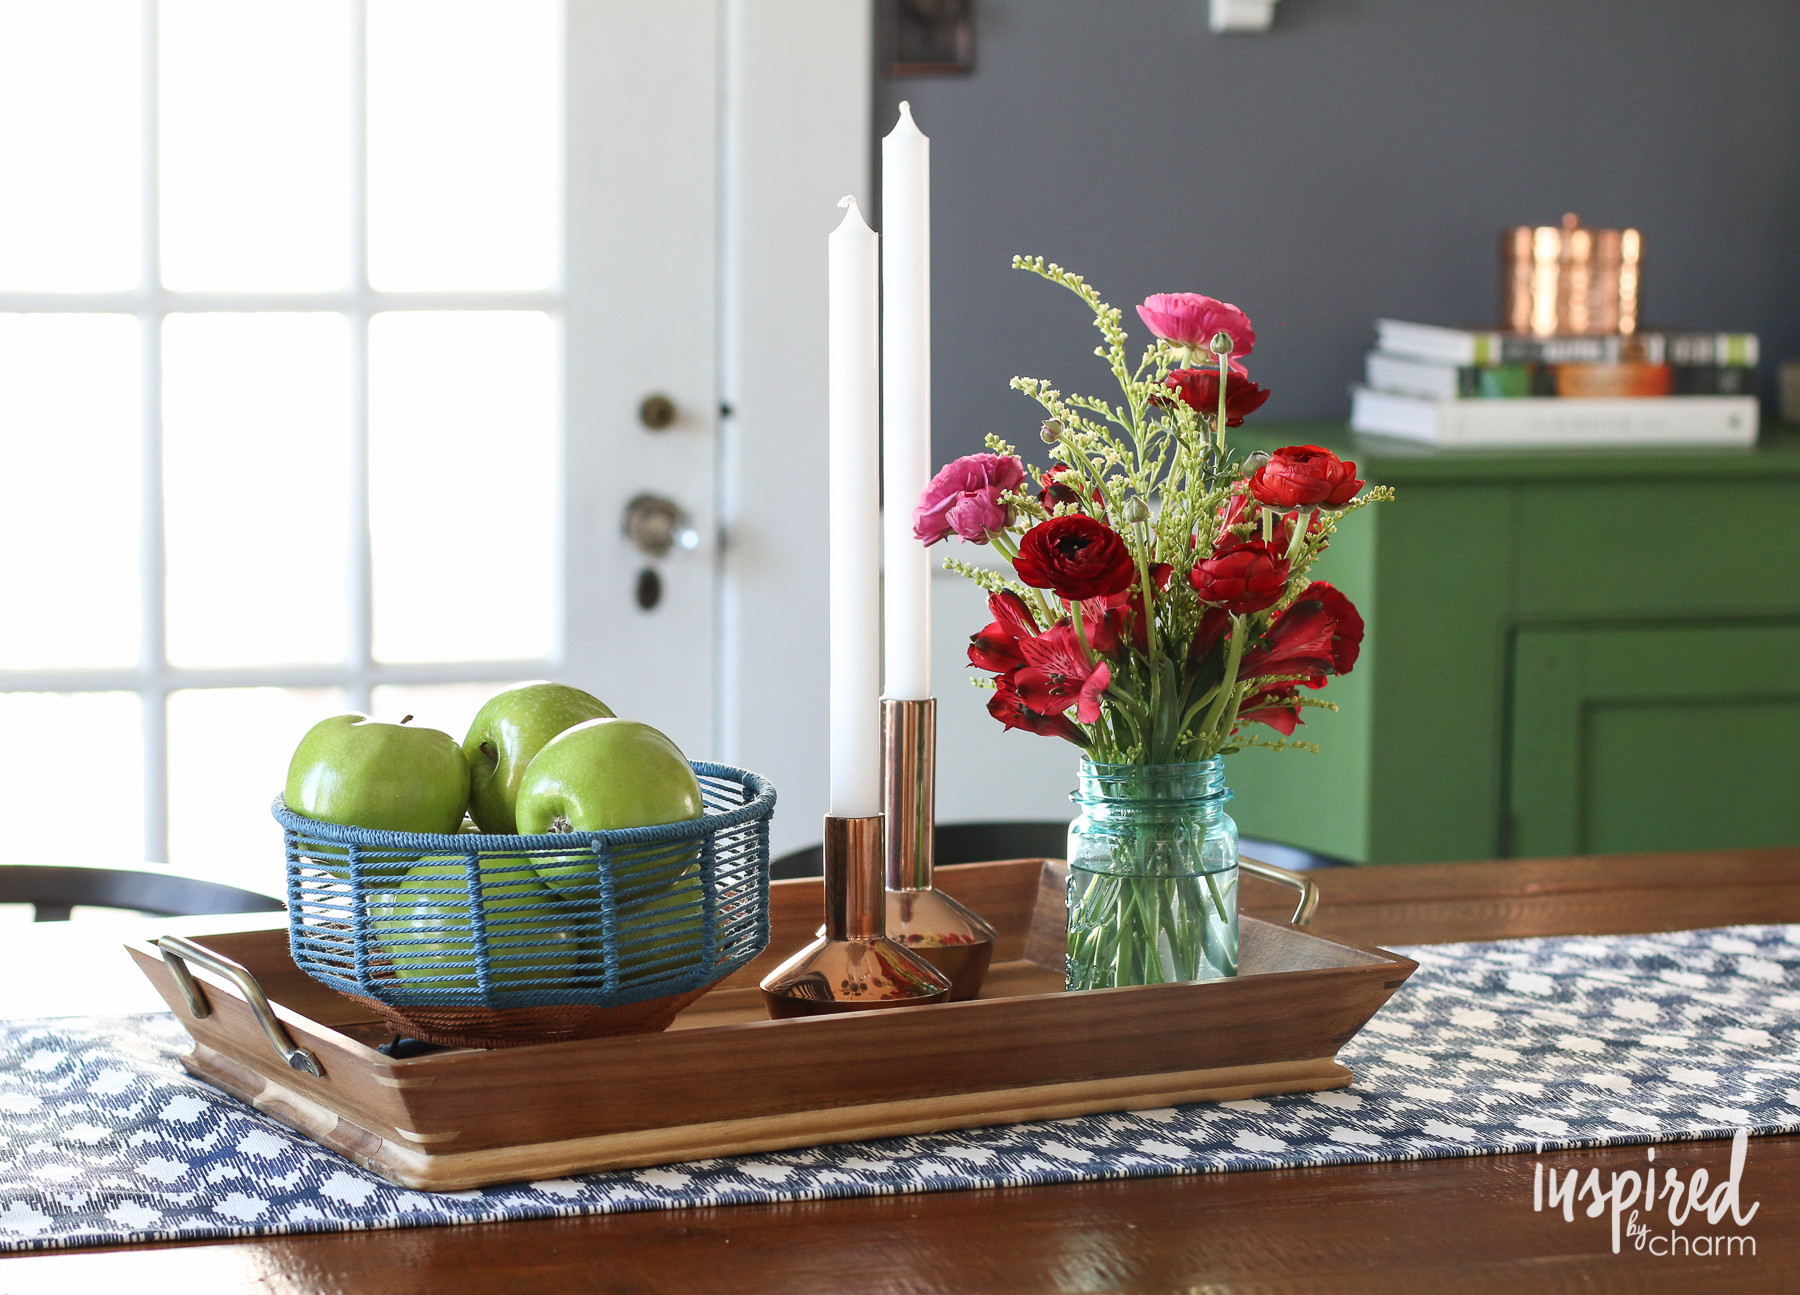 vase turned dining table of spring table styling ideas throughout spring table styling ideas inspired by charm